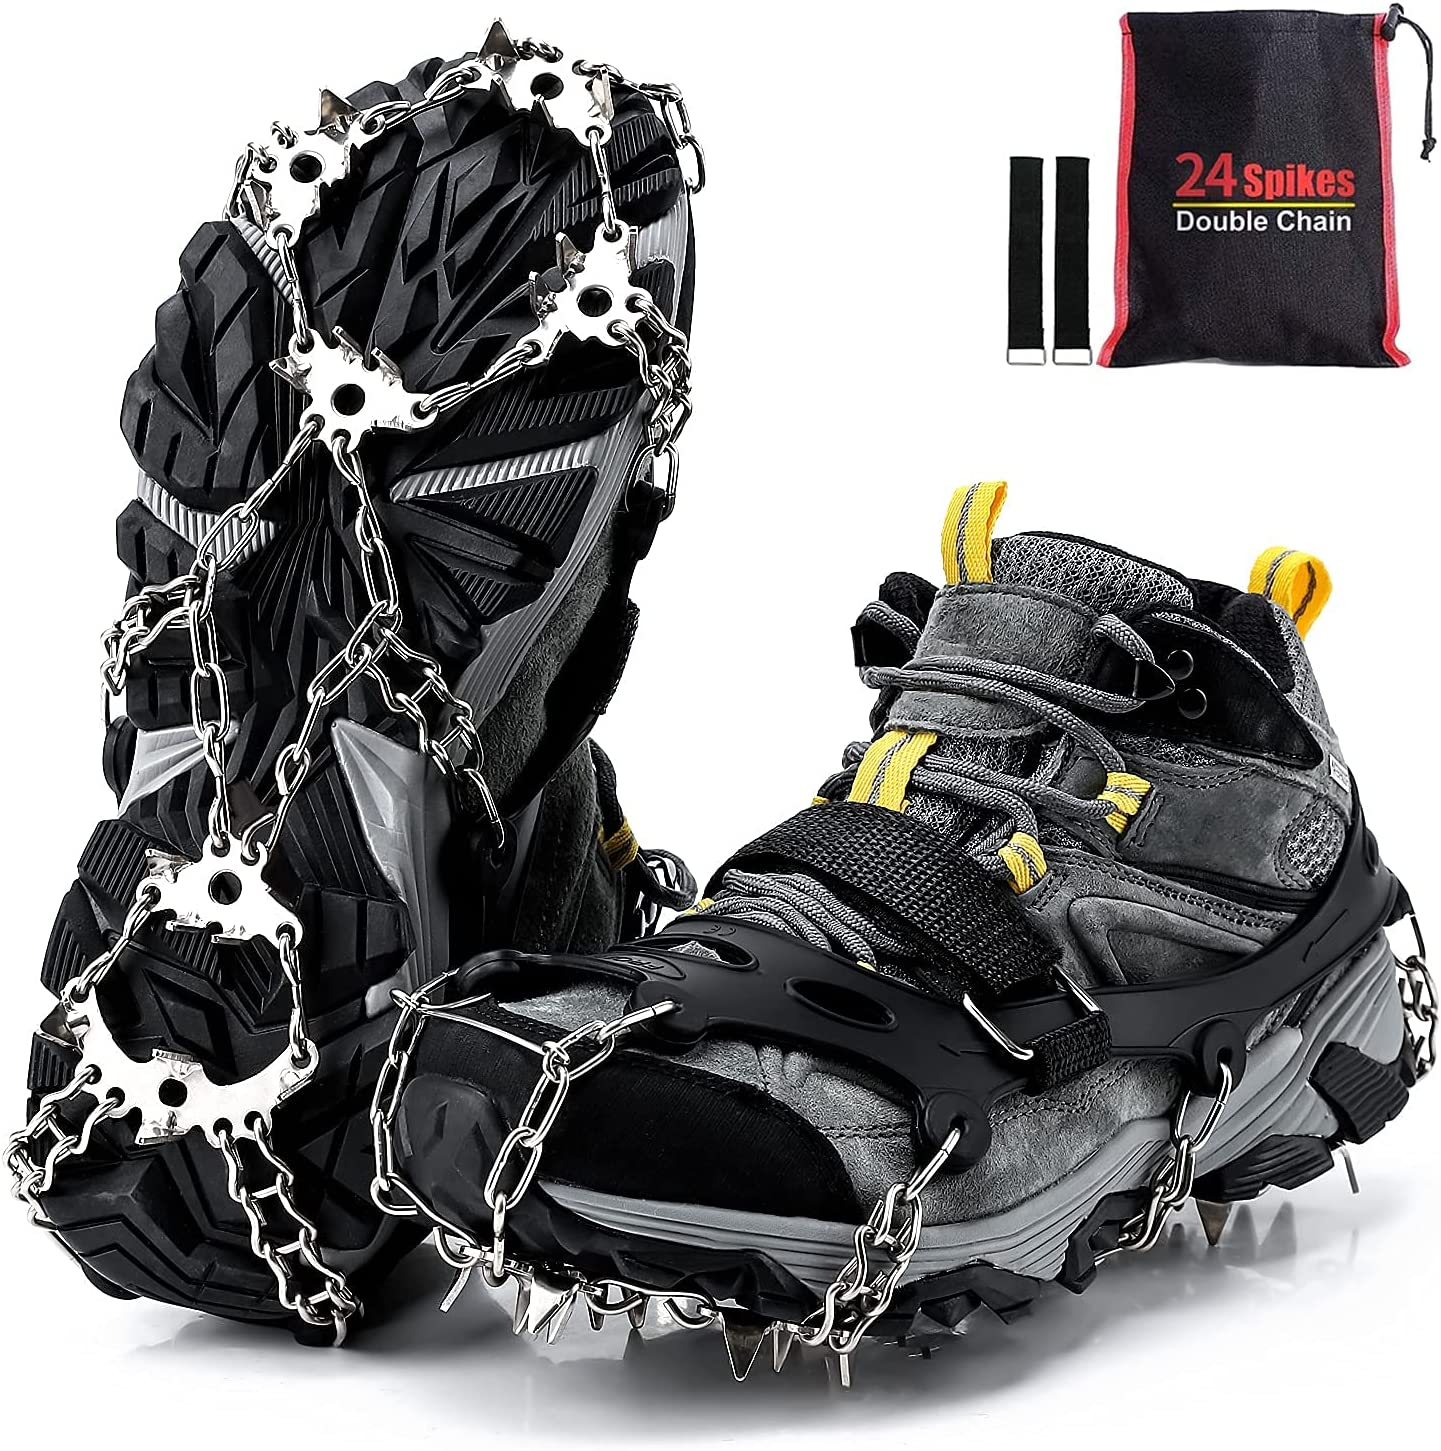 Ice Sale Special Price Cleats Outdoor Walk Traction Crampons Minneapolis Mall and for Boo Shoes